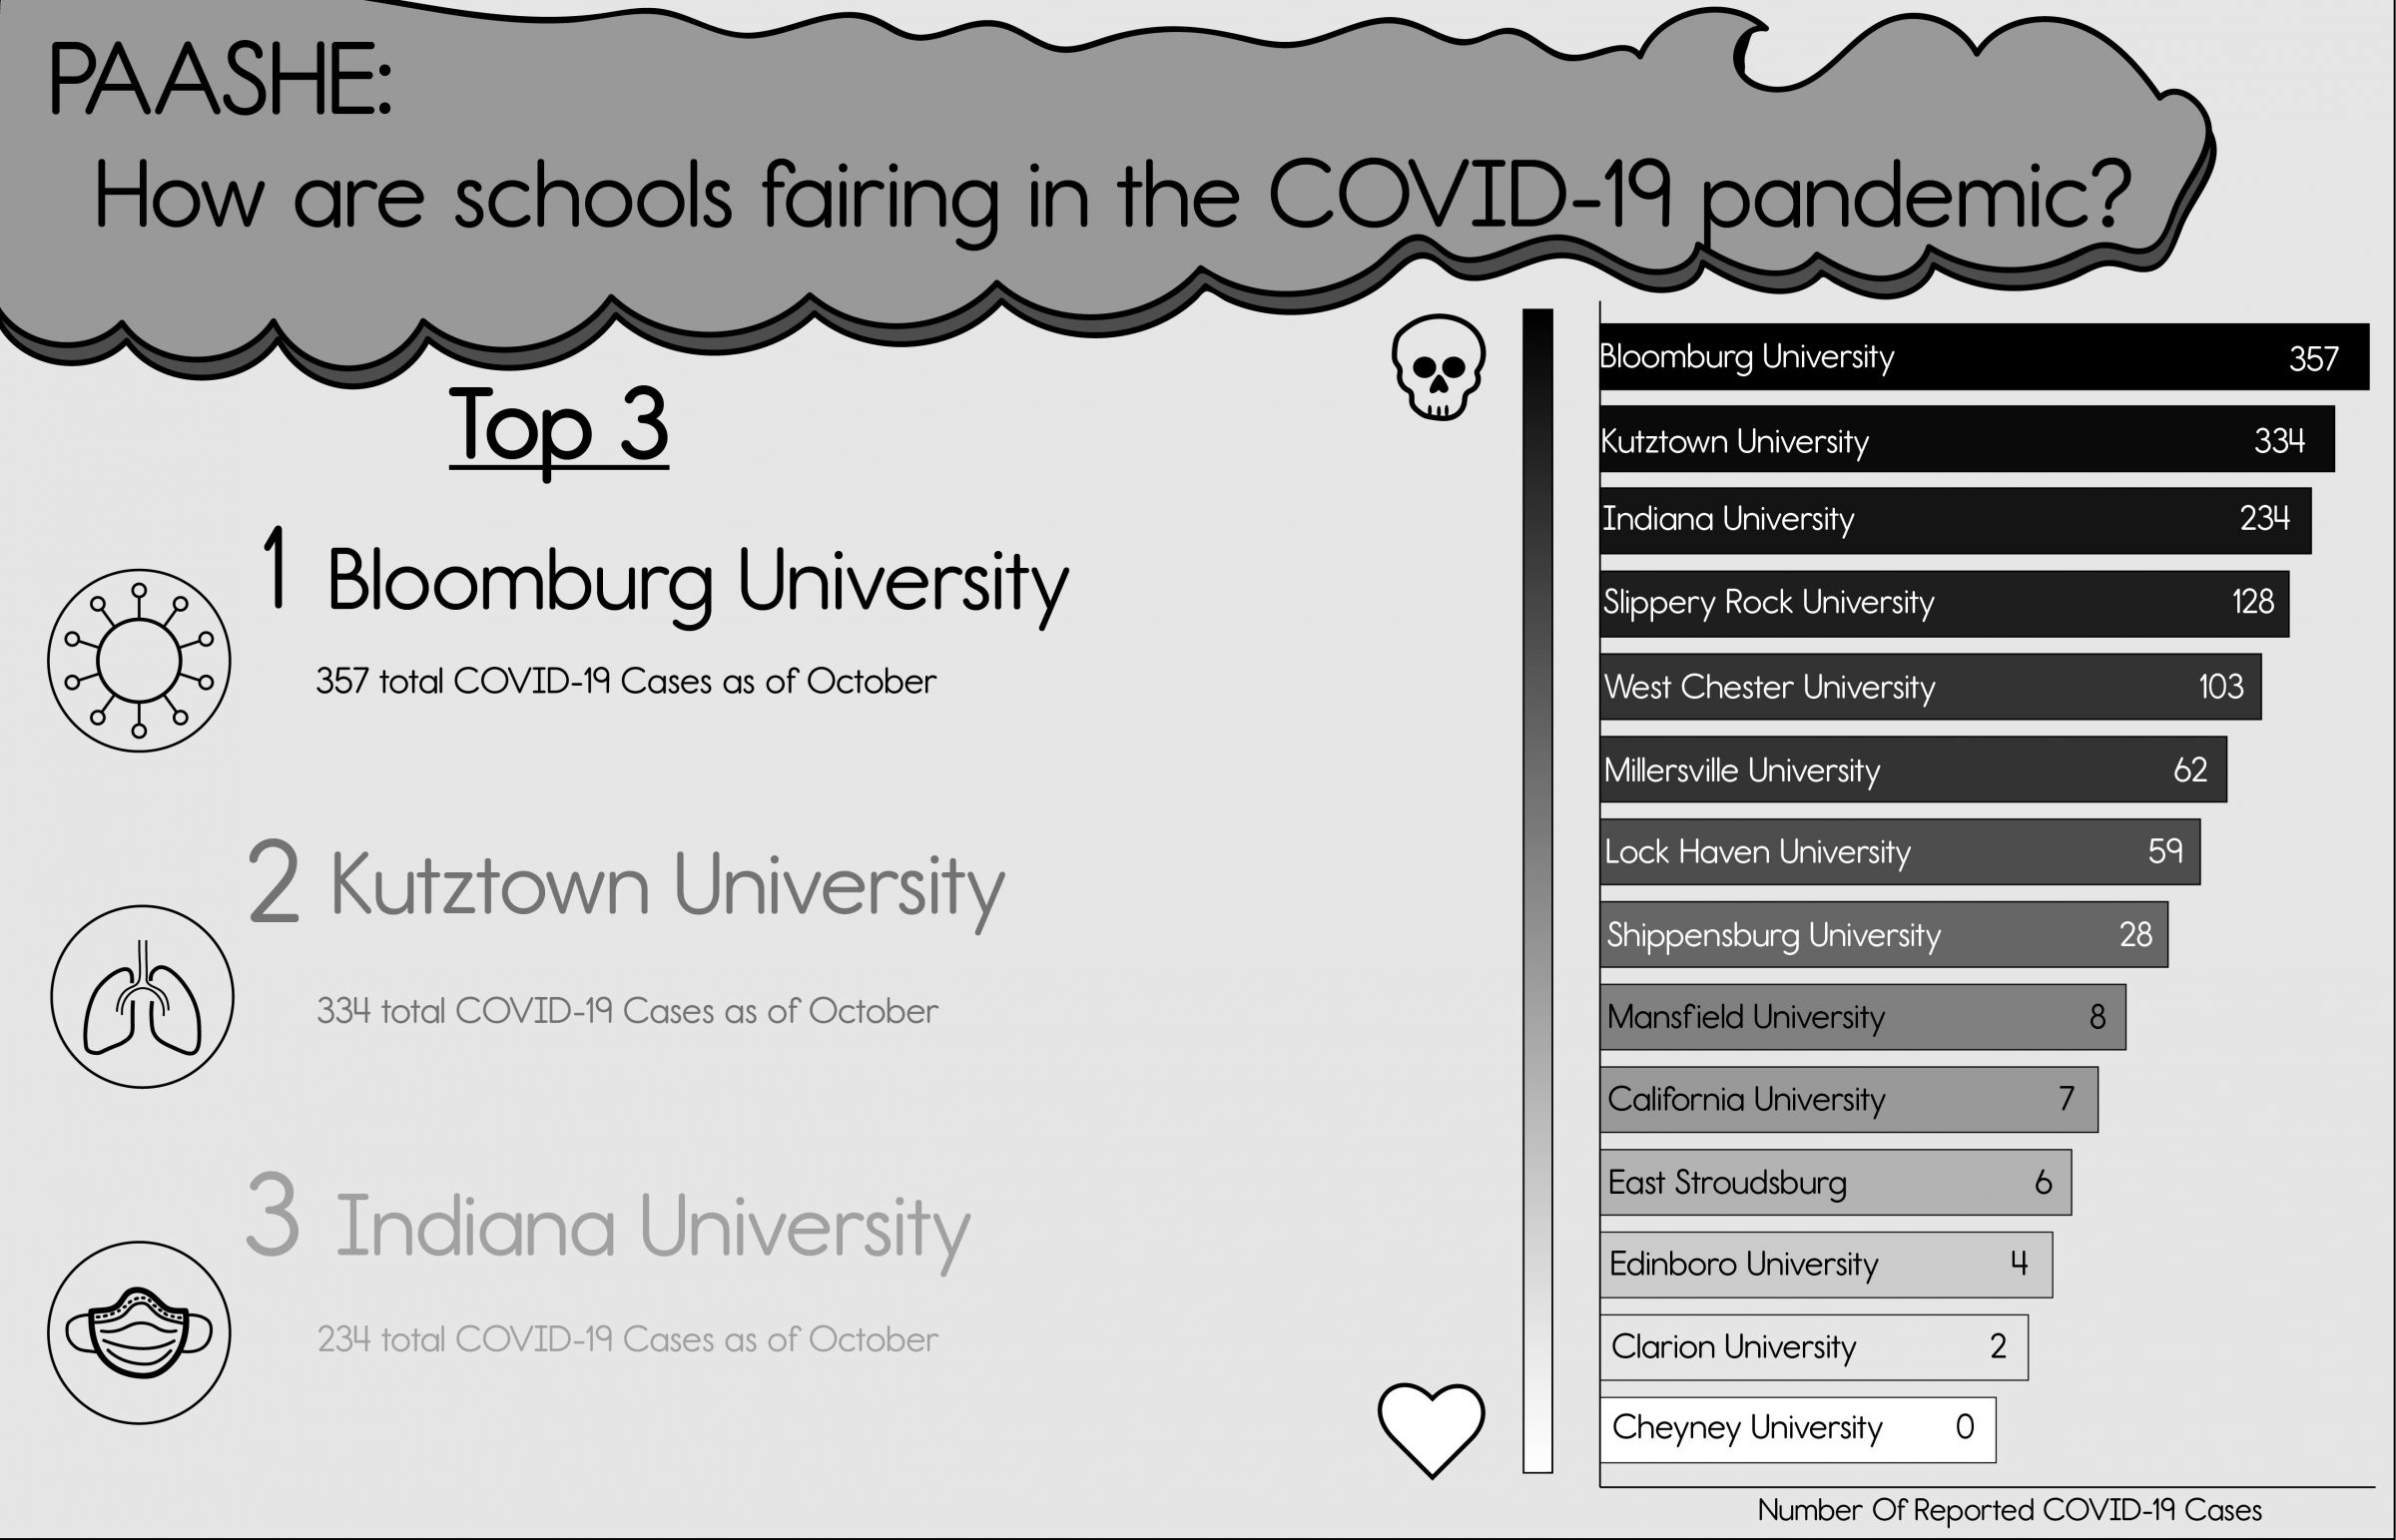 This is an infographic showing the number of COVID-19 cases in PAASHE schools.